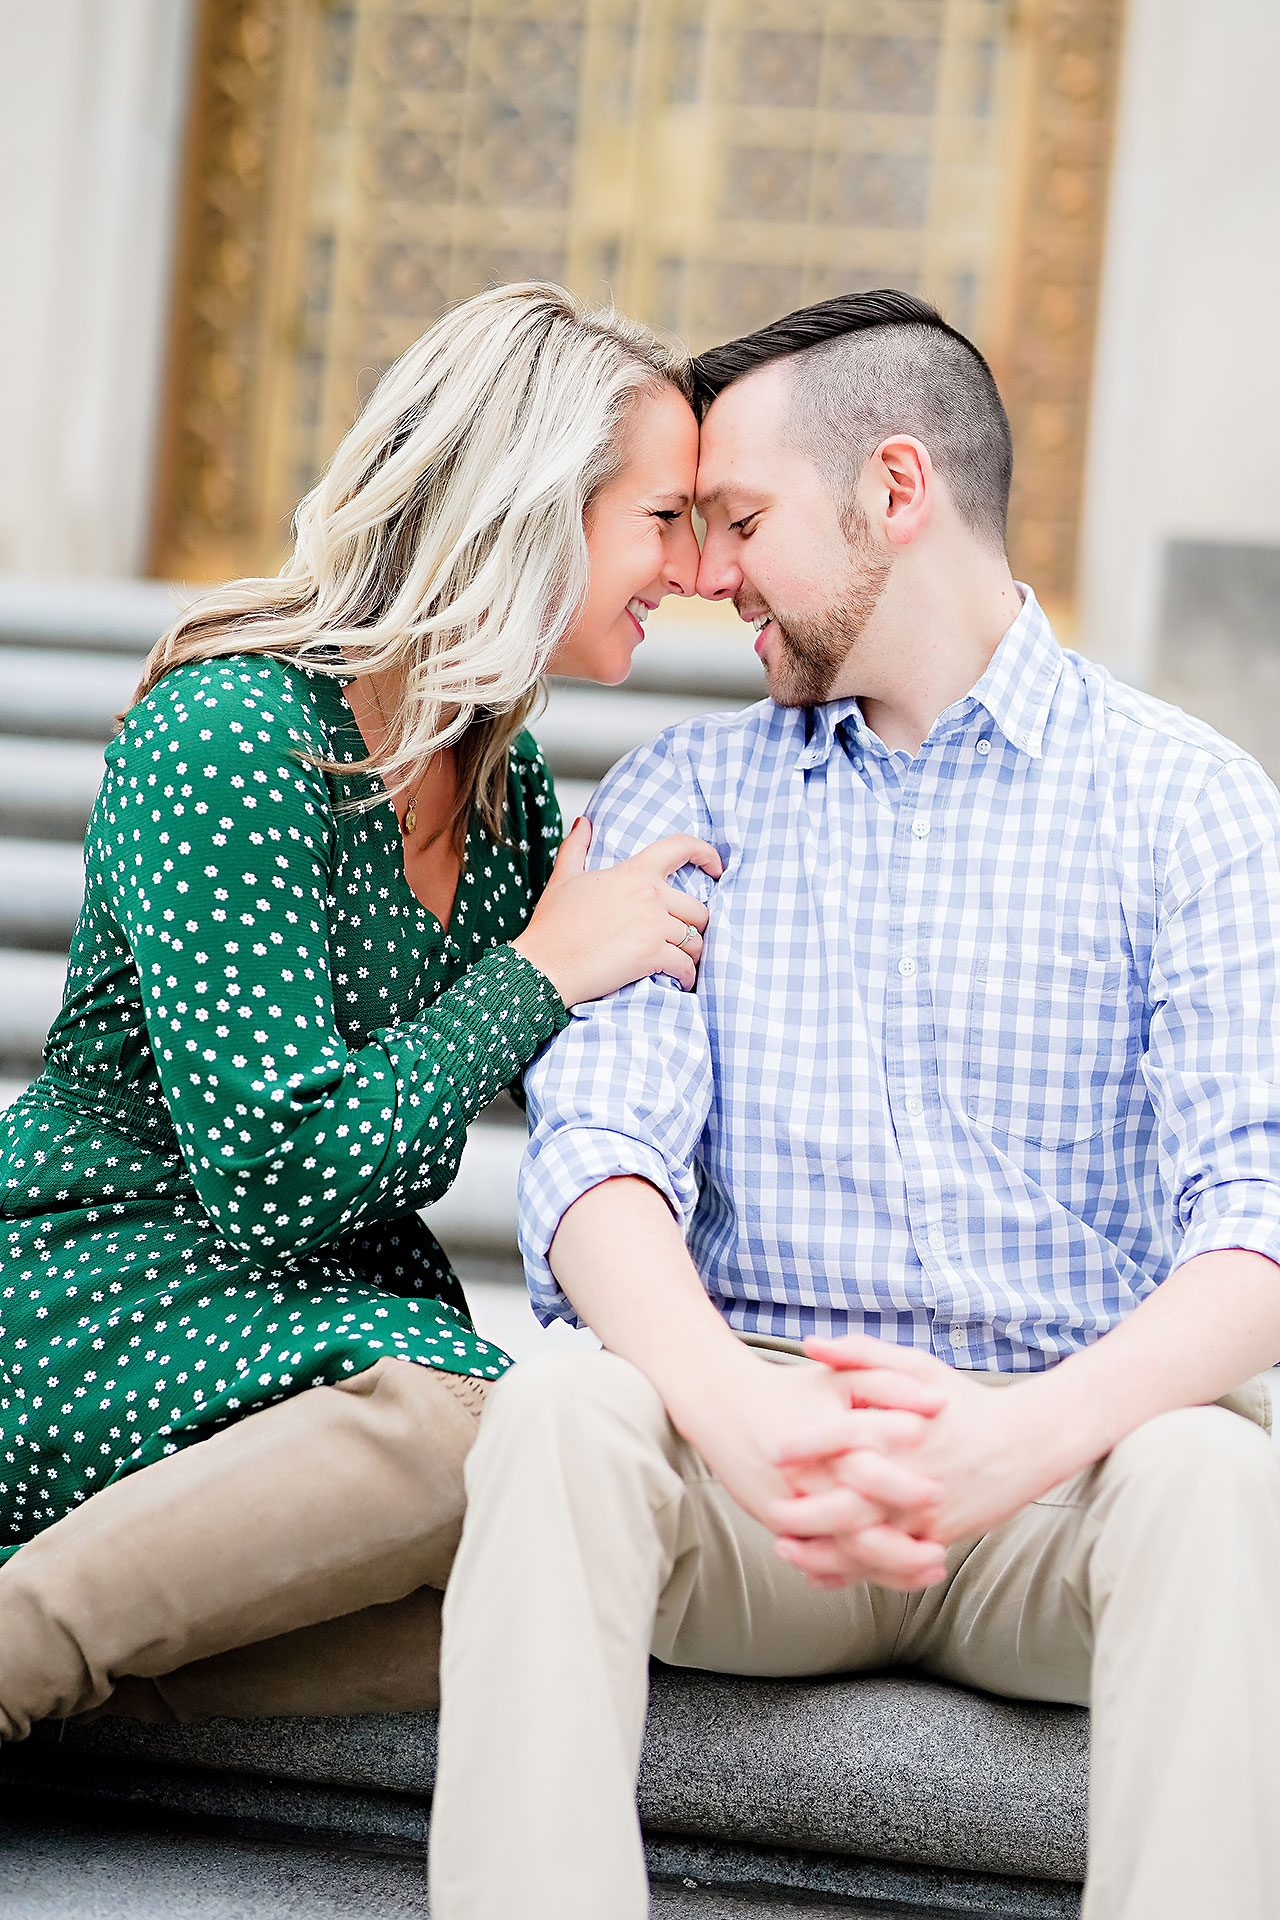 Kristen Jonny Indianapolis Downtown Engagement Session 057